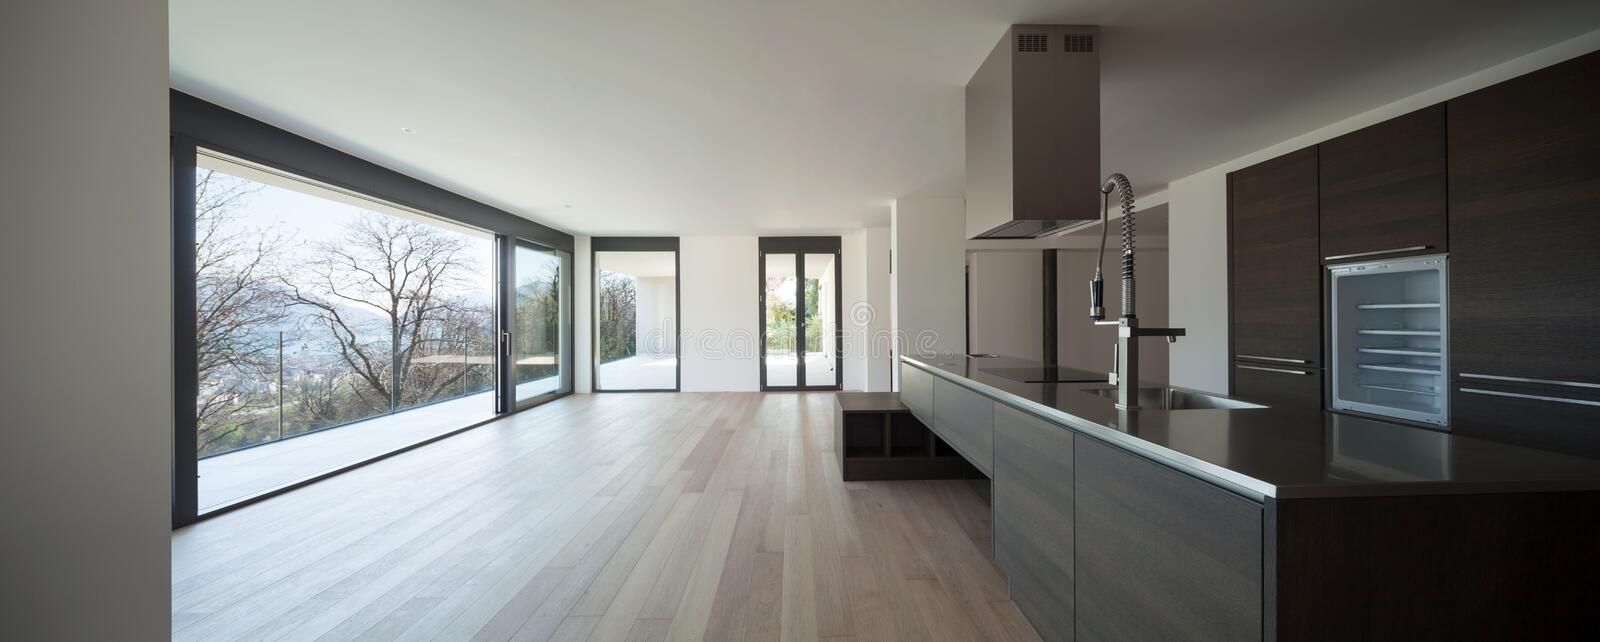 Modern kitchen with view stock image